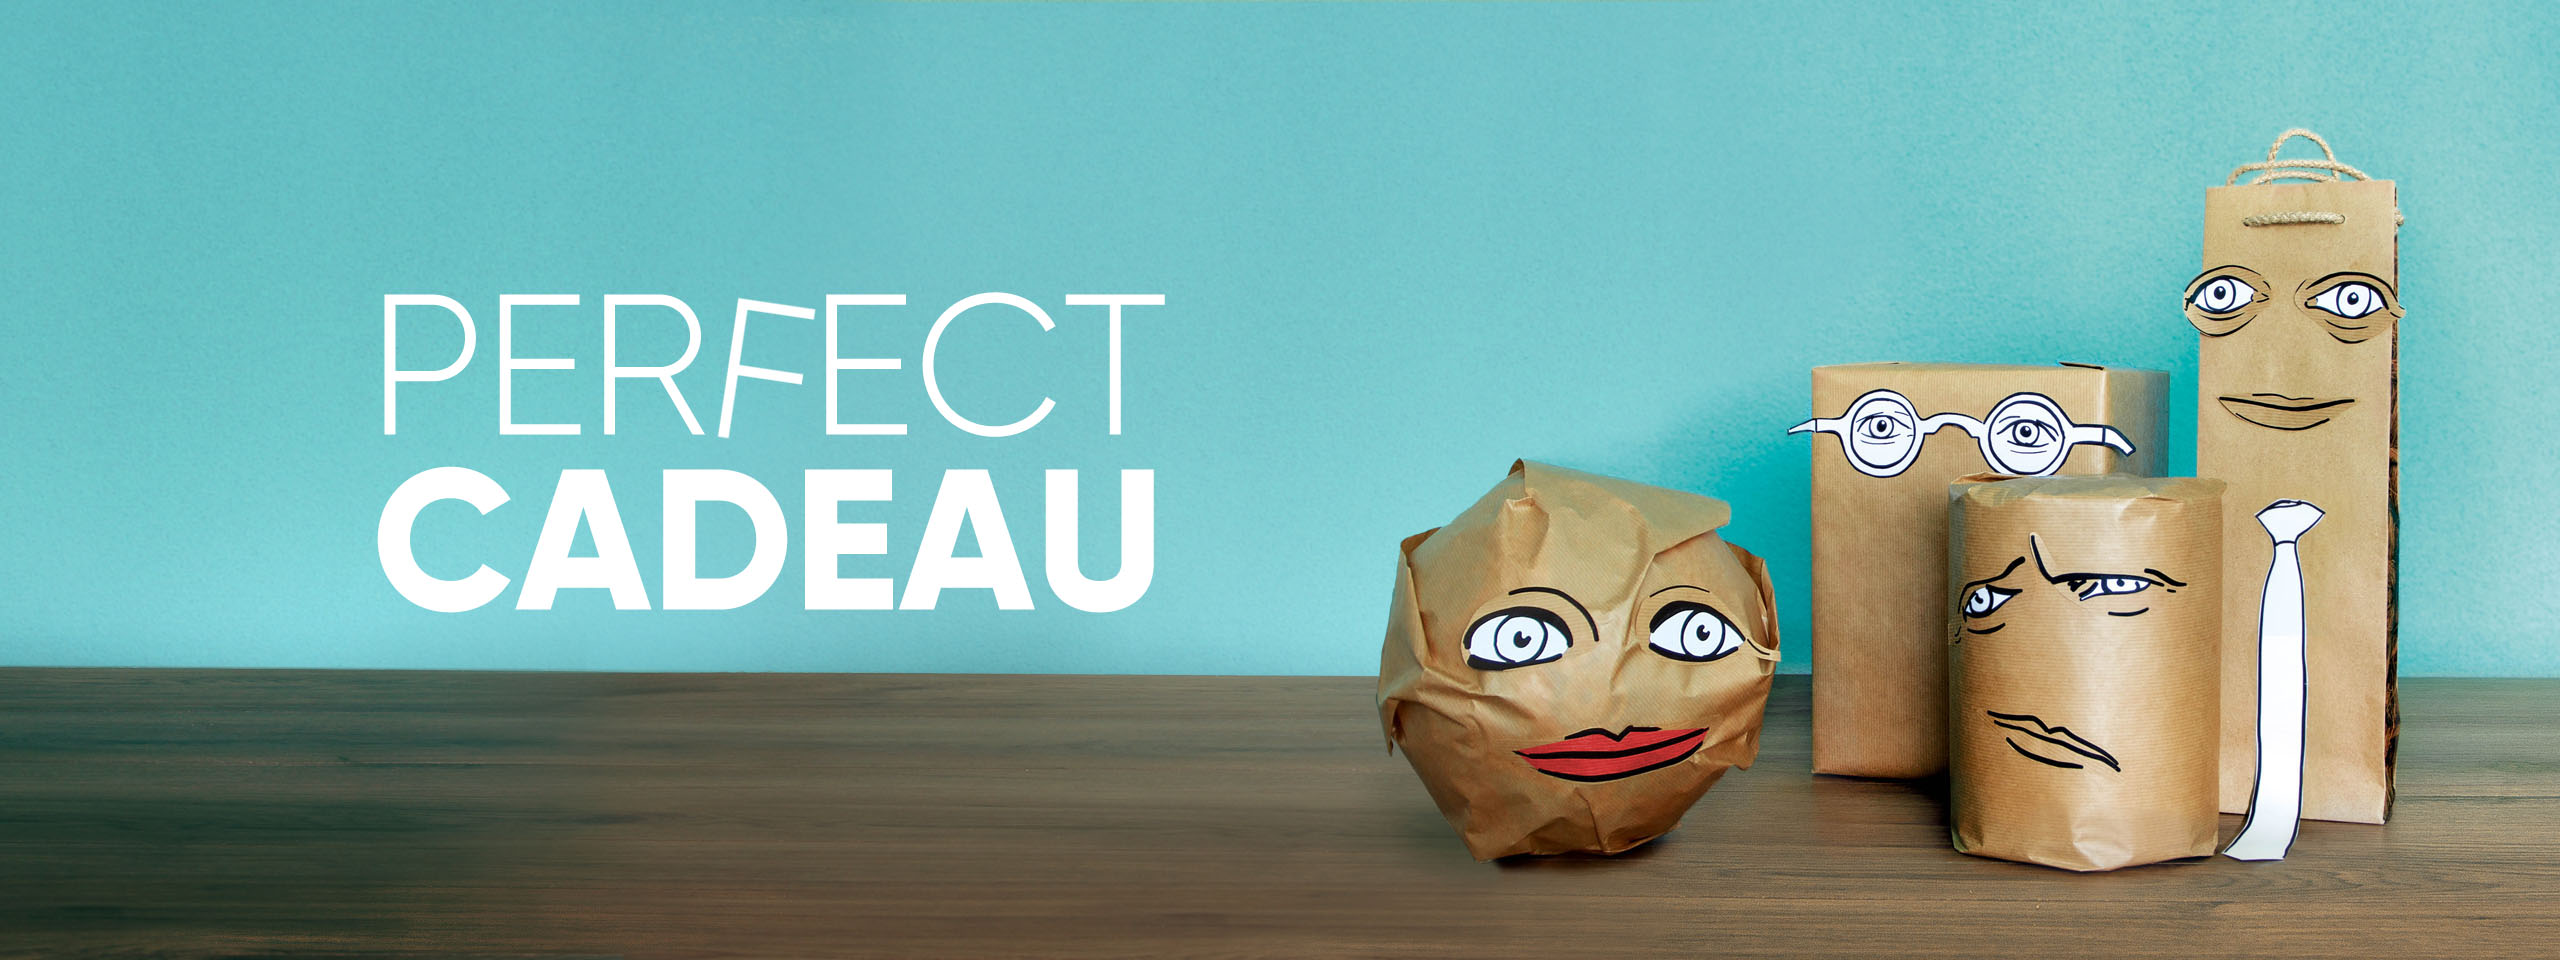 Perfecte_poster_perfect_cadeau7_2560x960_over